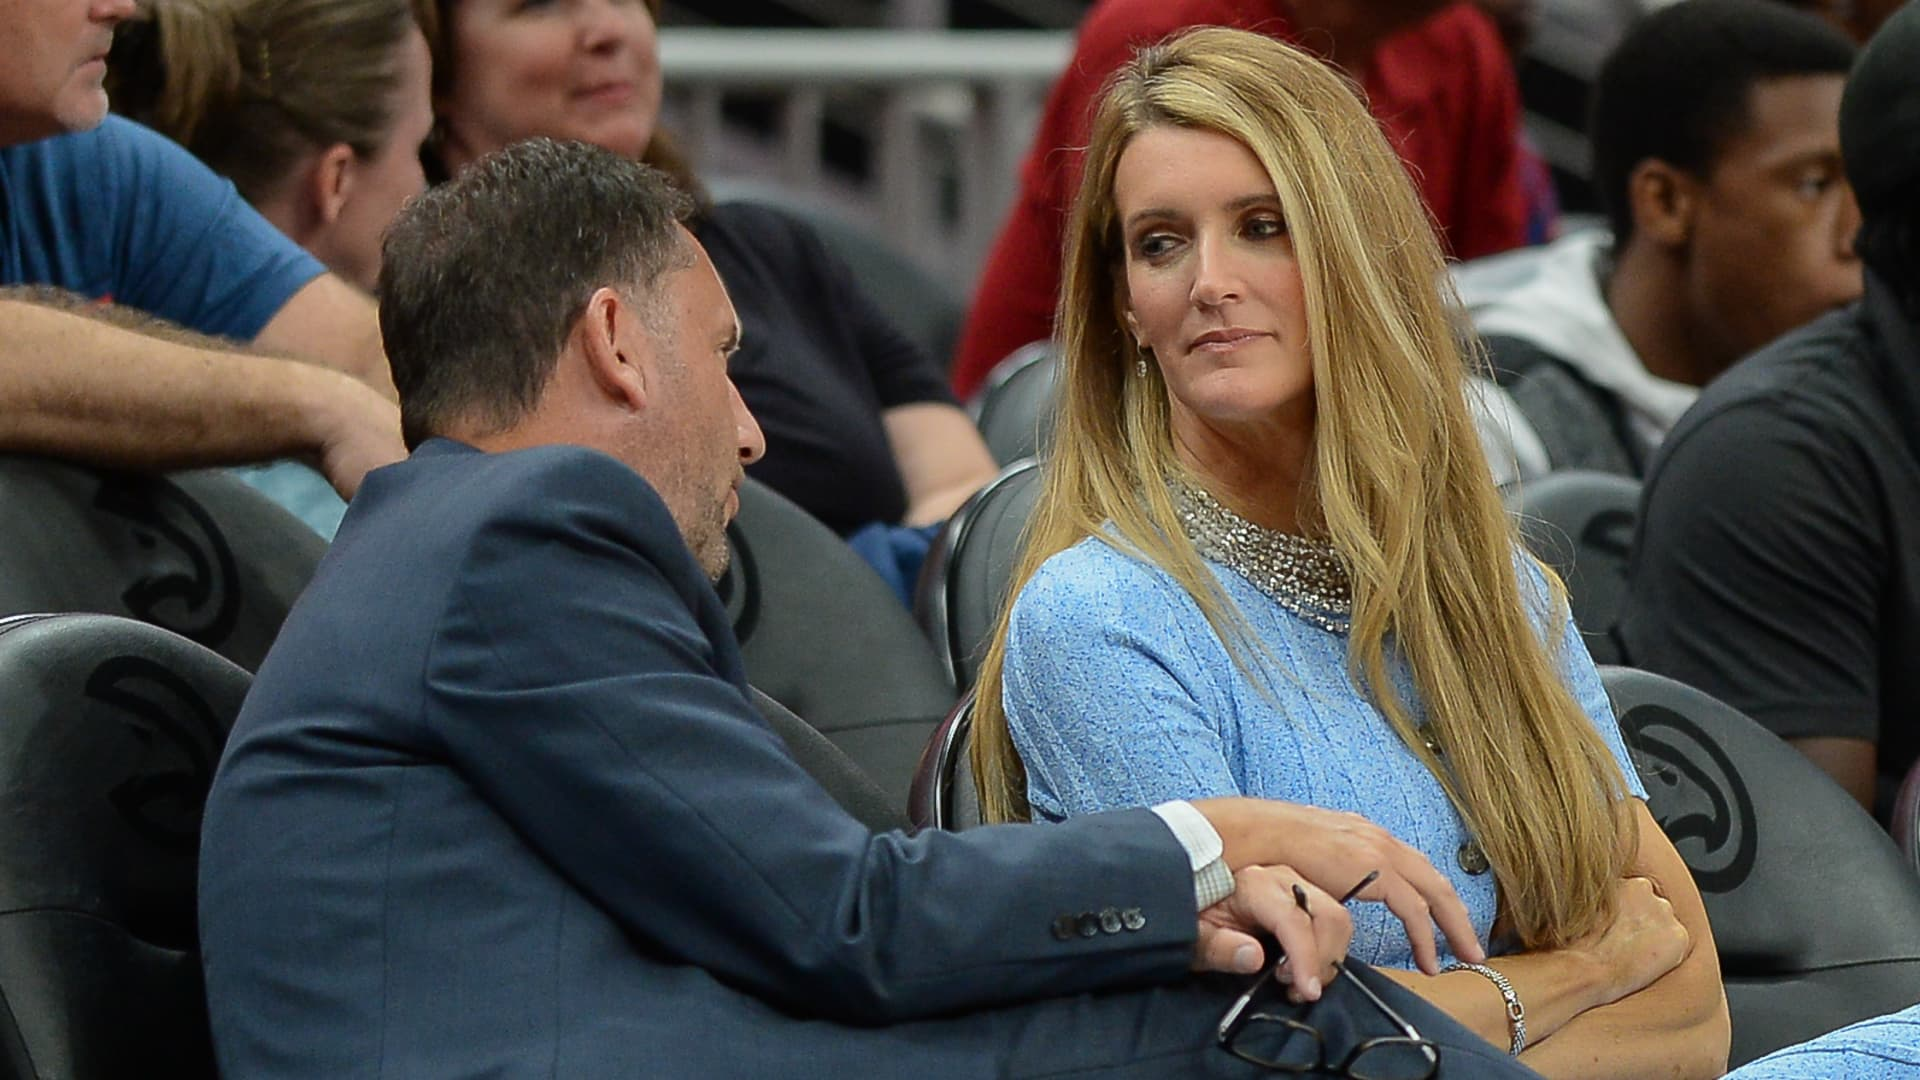 Atlanta owner Kelly Loeffler (right) talks with Dream General Manager Chris Sienko (left) during the WNBA game between the Las Vegas Aces and the Atlanta Dream on September 5th, 2019 at State Farm Arena in Atlanta, GA.